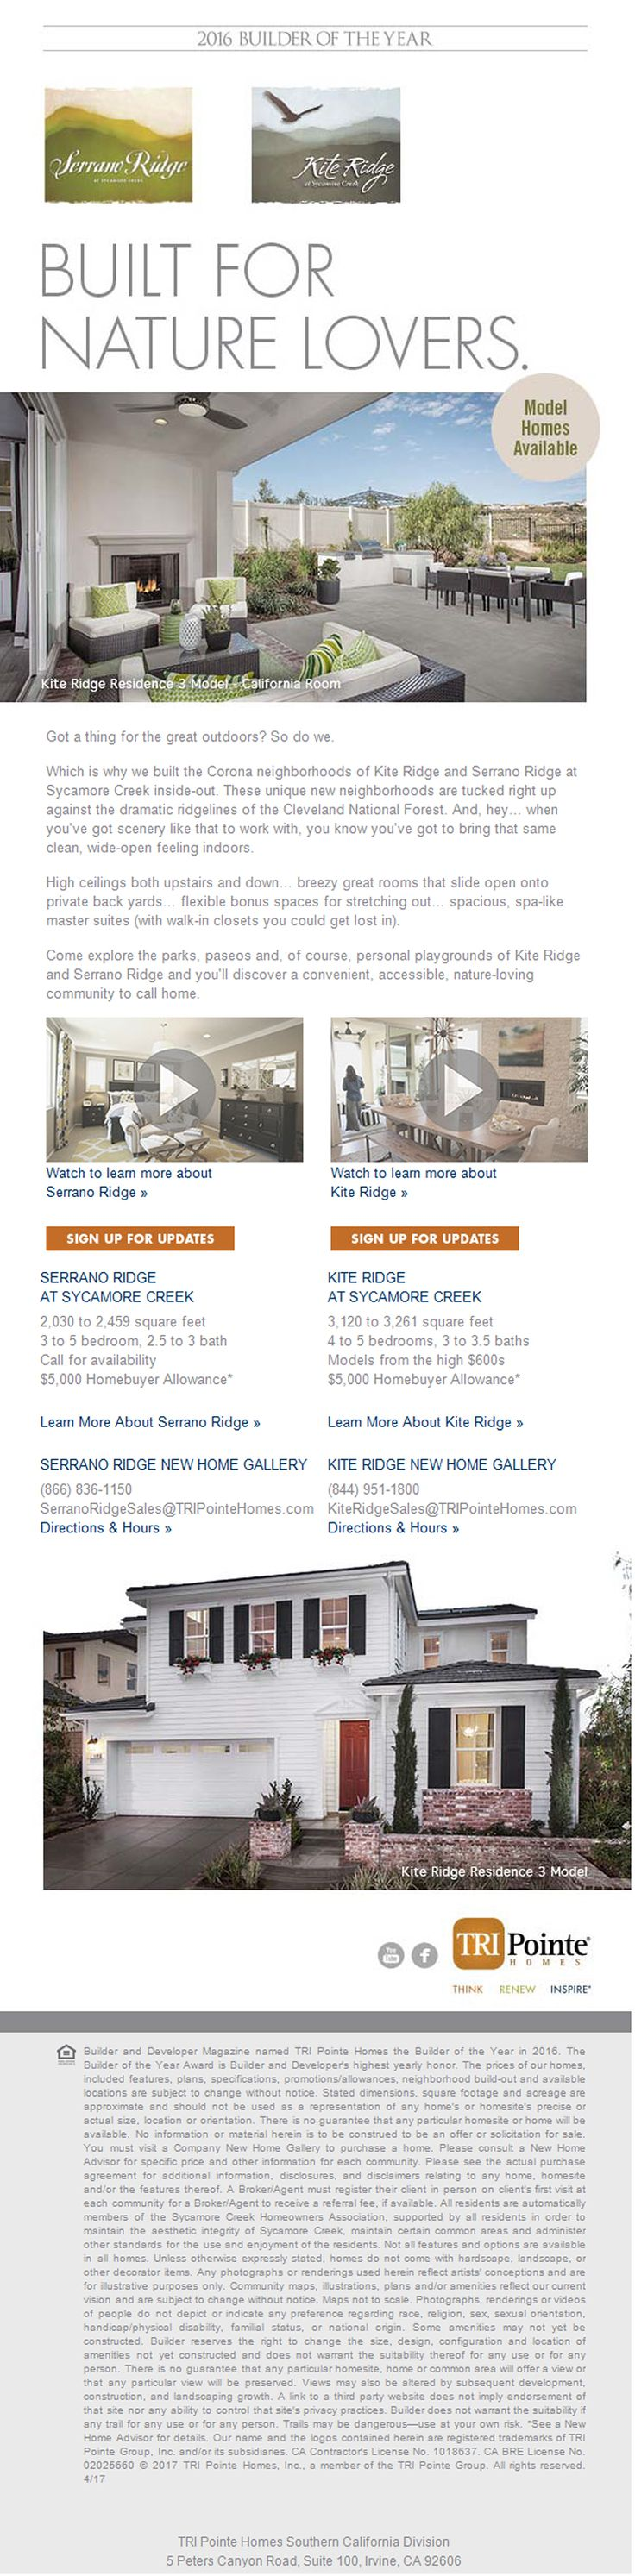 New Homes for Sale in Corona, California  Model Homes Now Selling at Sycamore Creek in Corona   Unique Neighborhoods Tucked up Next to the Cleveland National Forest  |  High Ceilings  |  Breezy Great Rooms  |  Private Back Yards  |  Flexible Bonus Space  |  Spa-Like Master Suites  |  $5,000 Homebuyer Allowance*  Kite Ridge:  http://www.tripointehomes.com/southern-california/kite-ridge-at-sycamore-creek/  Sycamore Ridge…